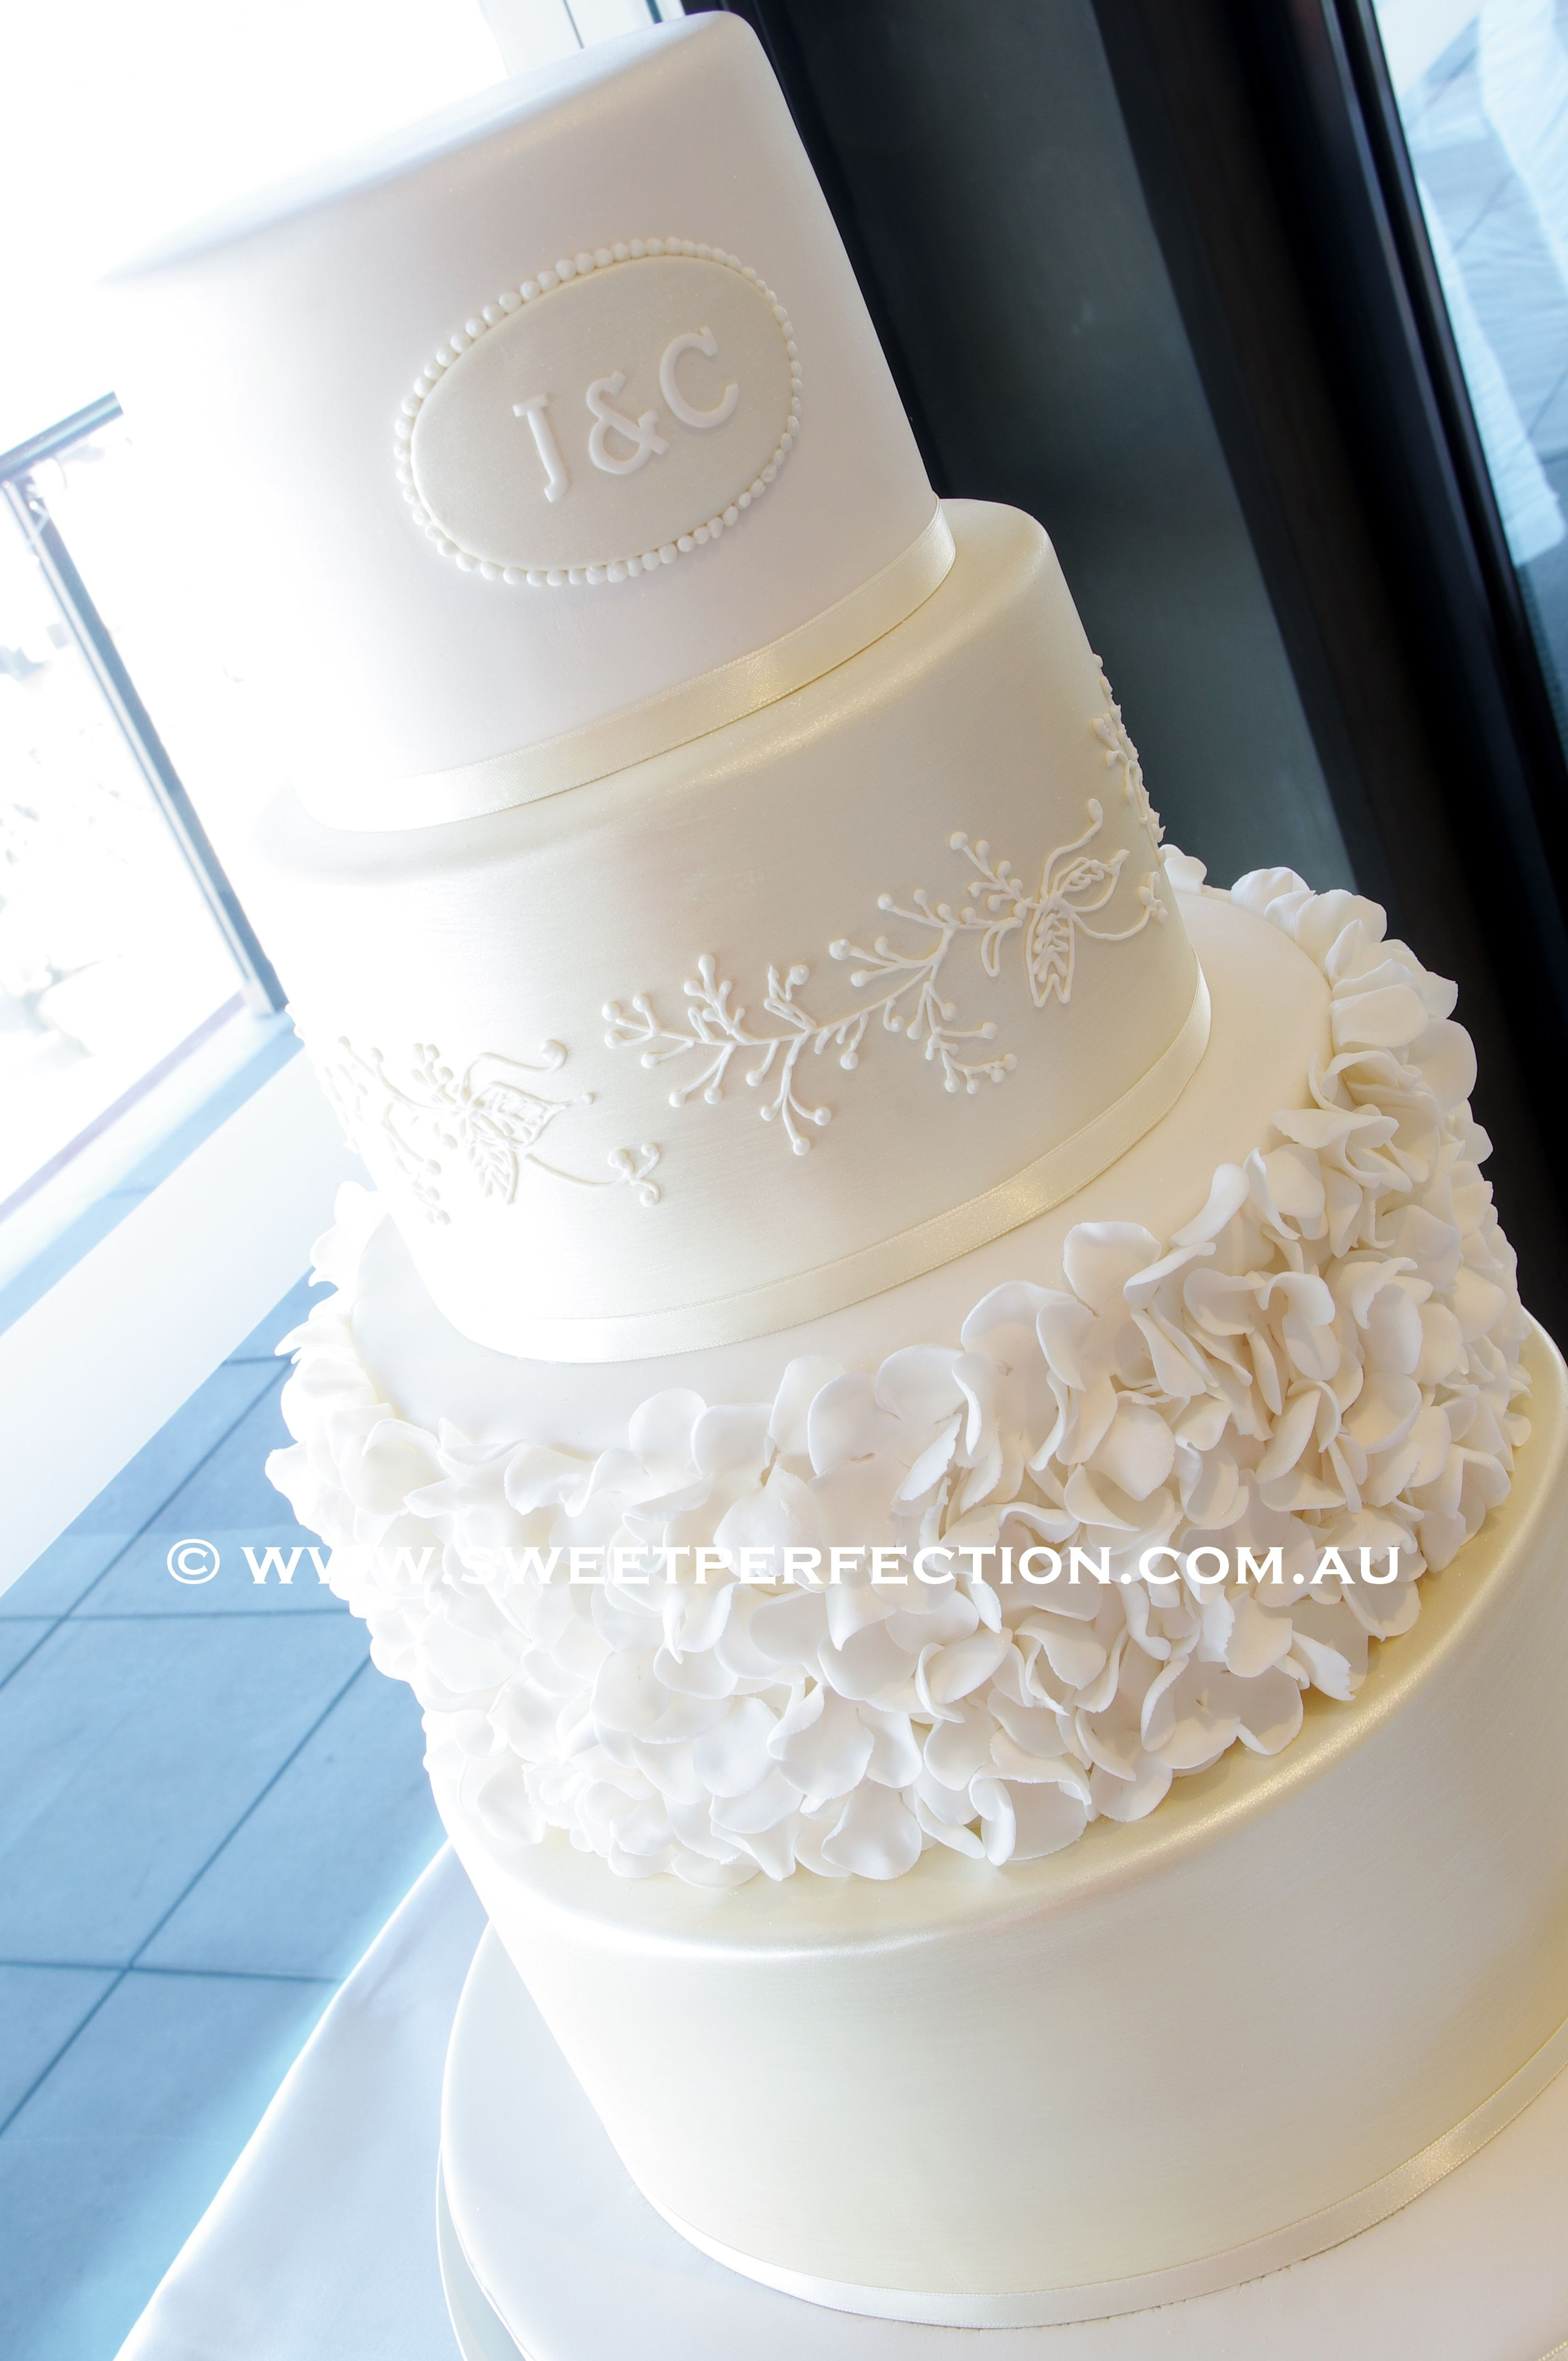 Pale Gold Fondant covered, brushed with pale gold, with ruffled petal design, and piped royal icing lacework based on bridal veil. Thanks for looking...